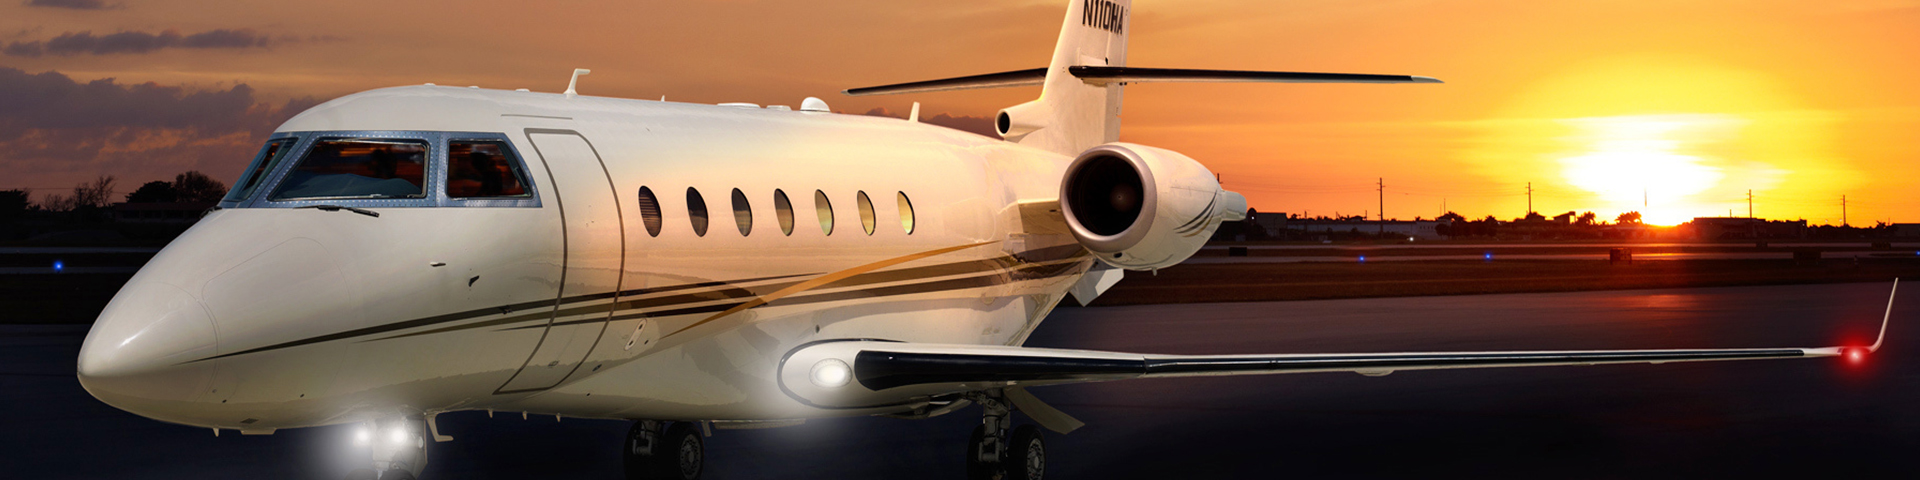 gulfstream g2001 - Frequently asked questions